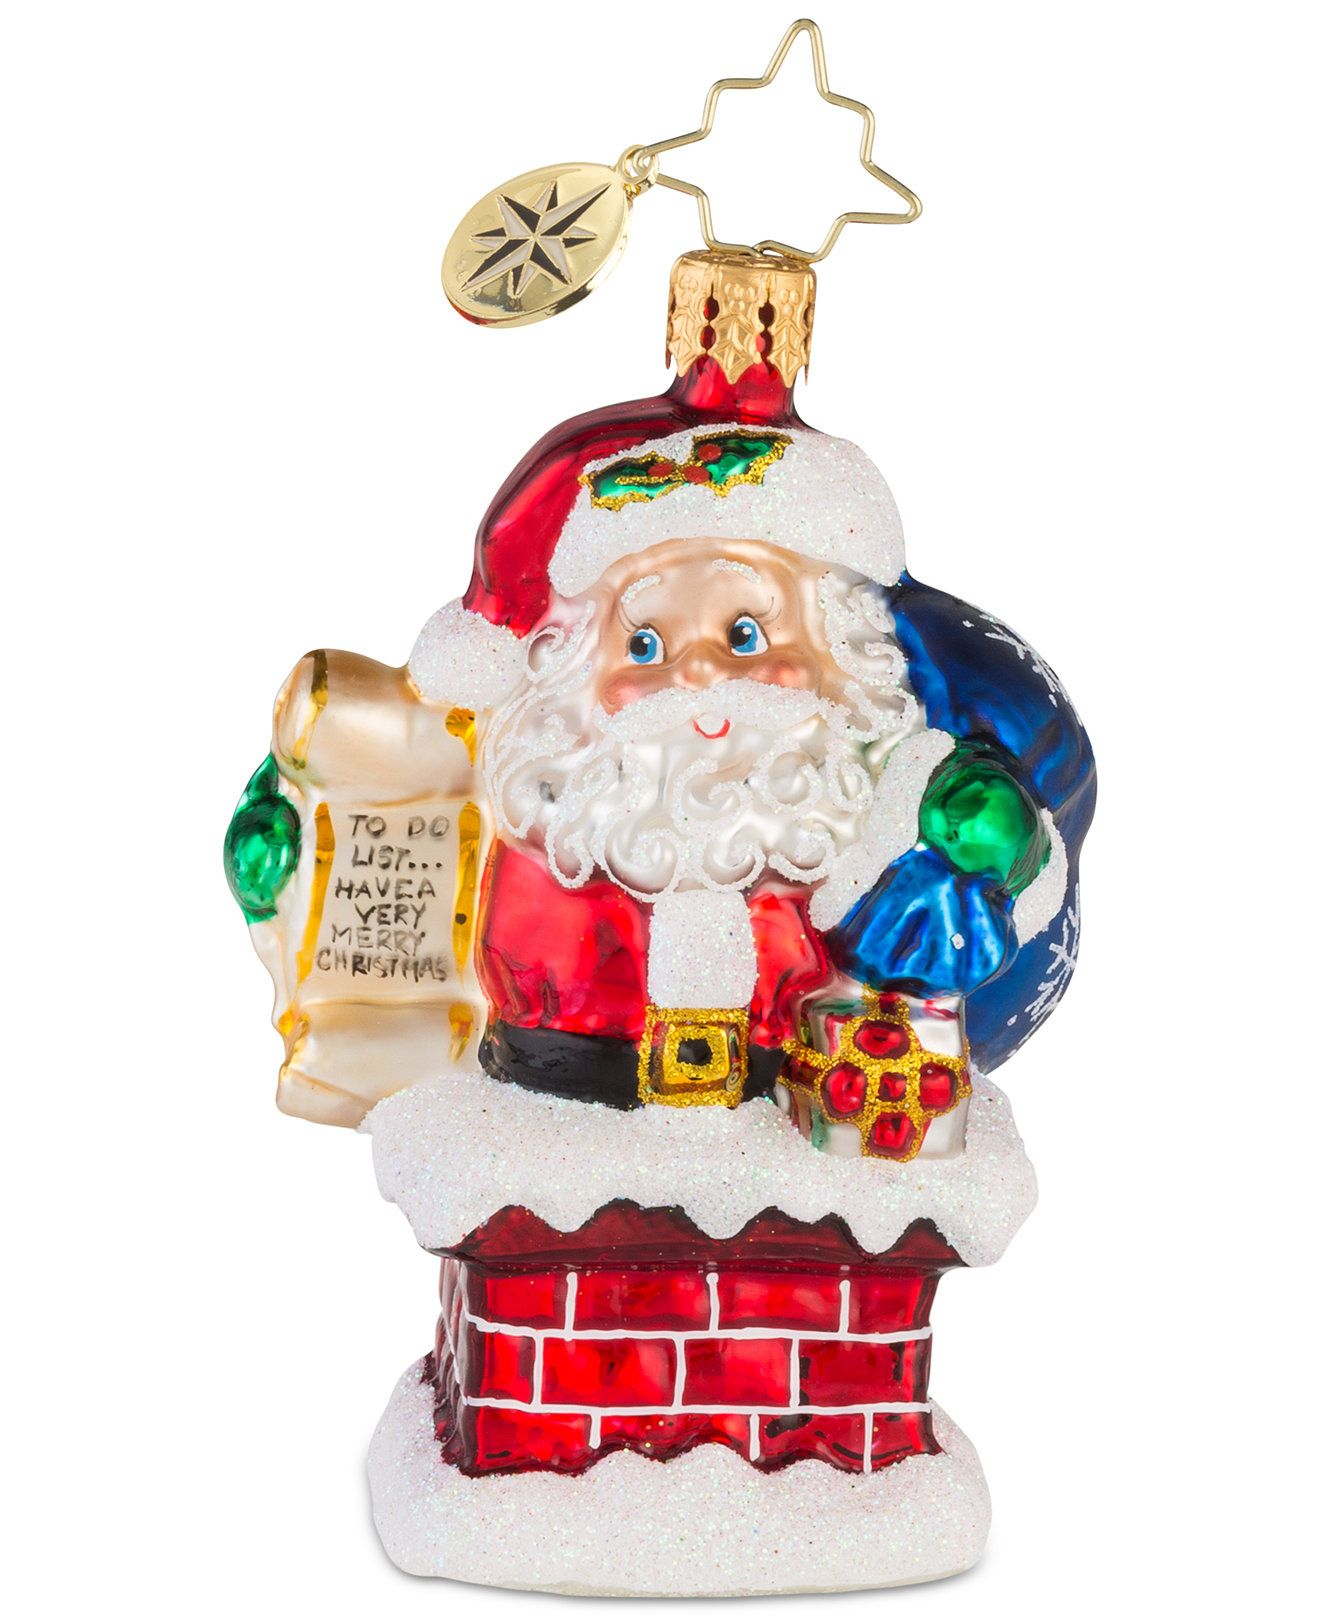 Christopher Radko Rooftop Checklist Gem Mid Year Ornament Reviews Holiday Shop Home Macy S Christopher Radko Ornaments Classic Christmas Decorations Ornaments